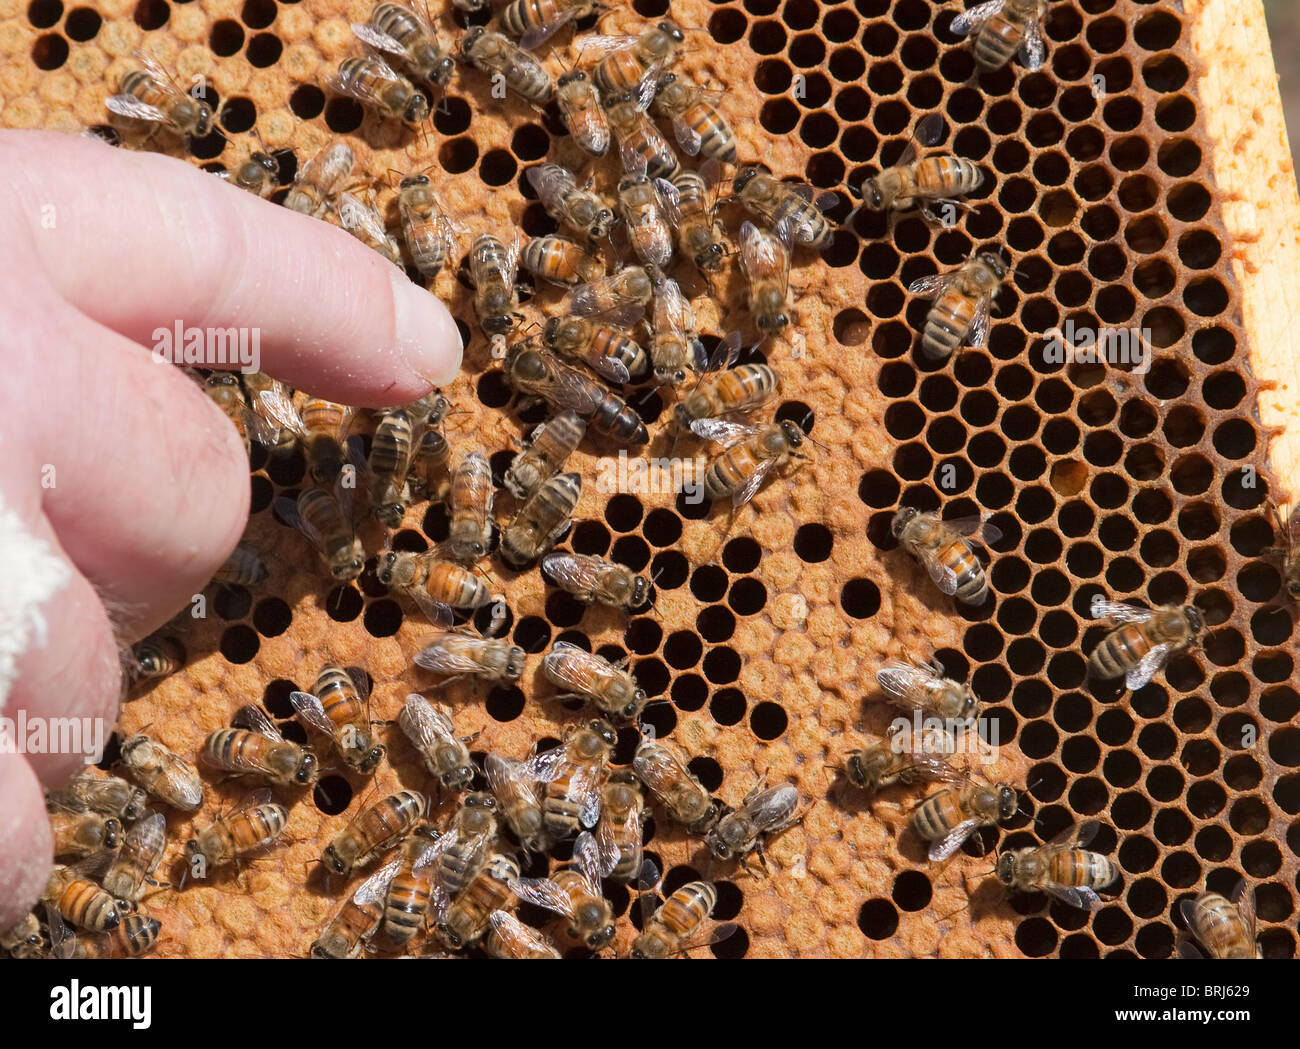 Honey bees in hive with beekeeper pointing to queen bee - Stock Image